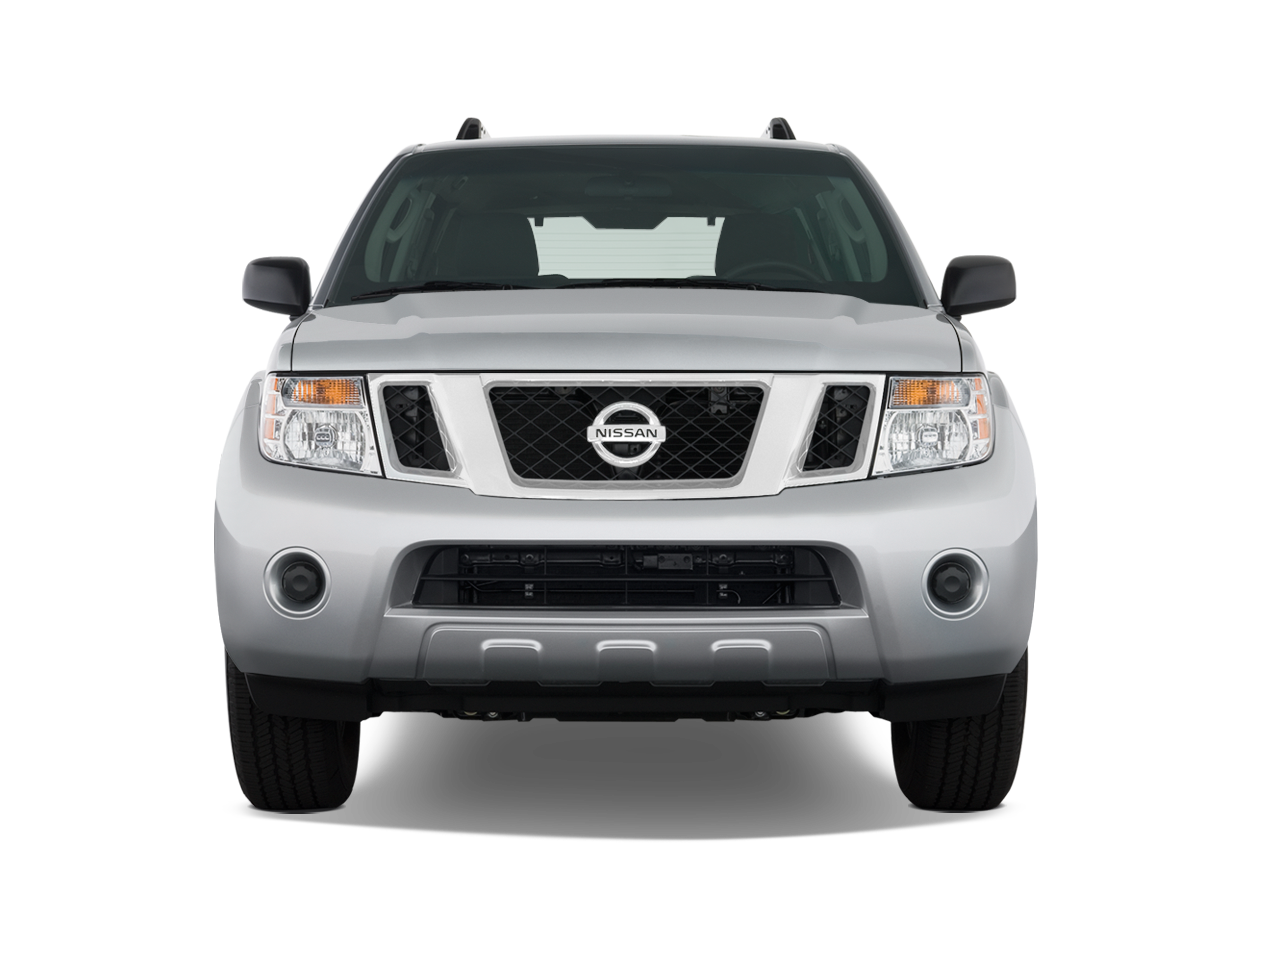 2009 nissan pathfinder le 4x4 nissan midsize suv review 1750 vanachro Image collections